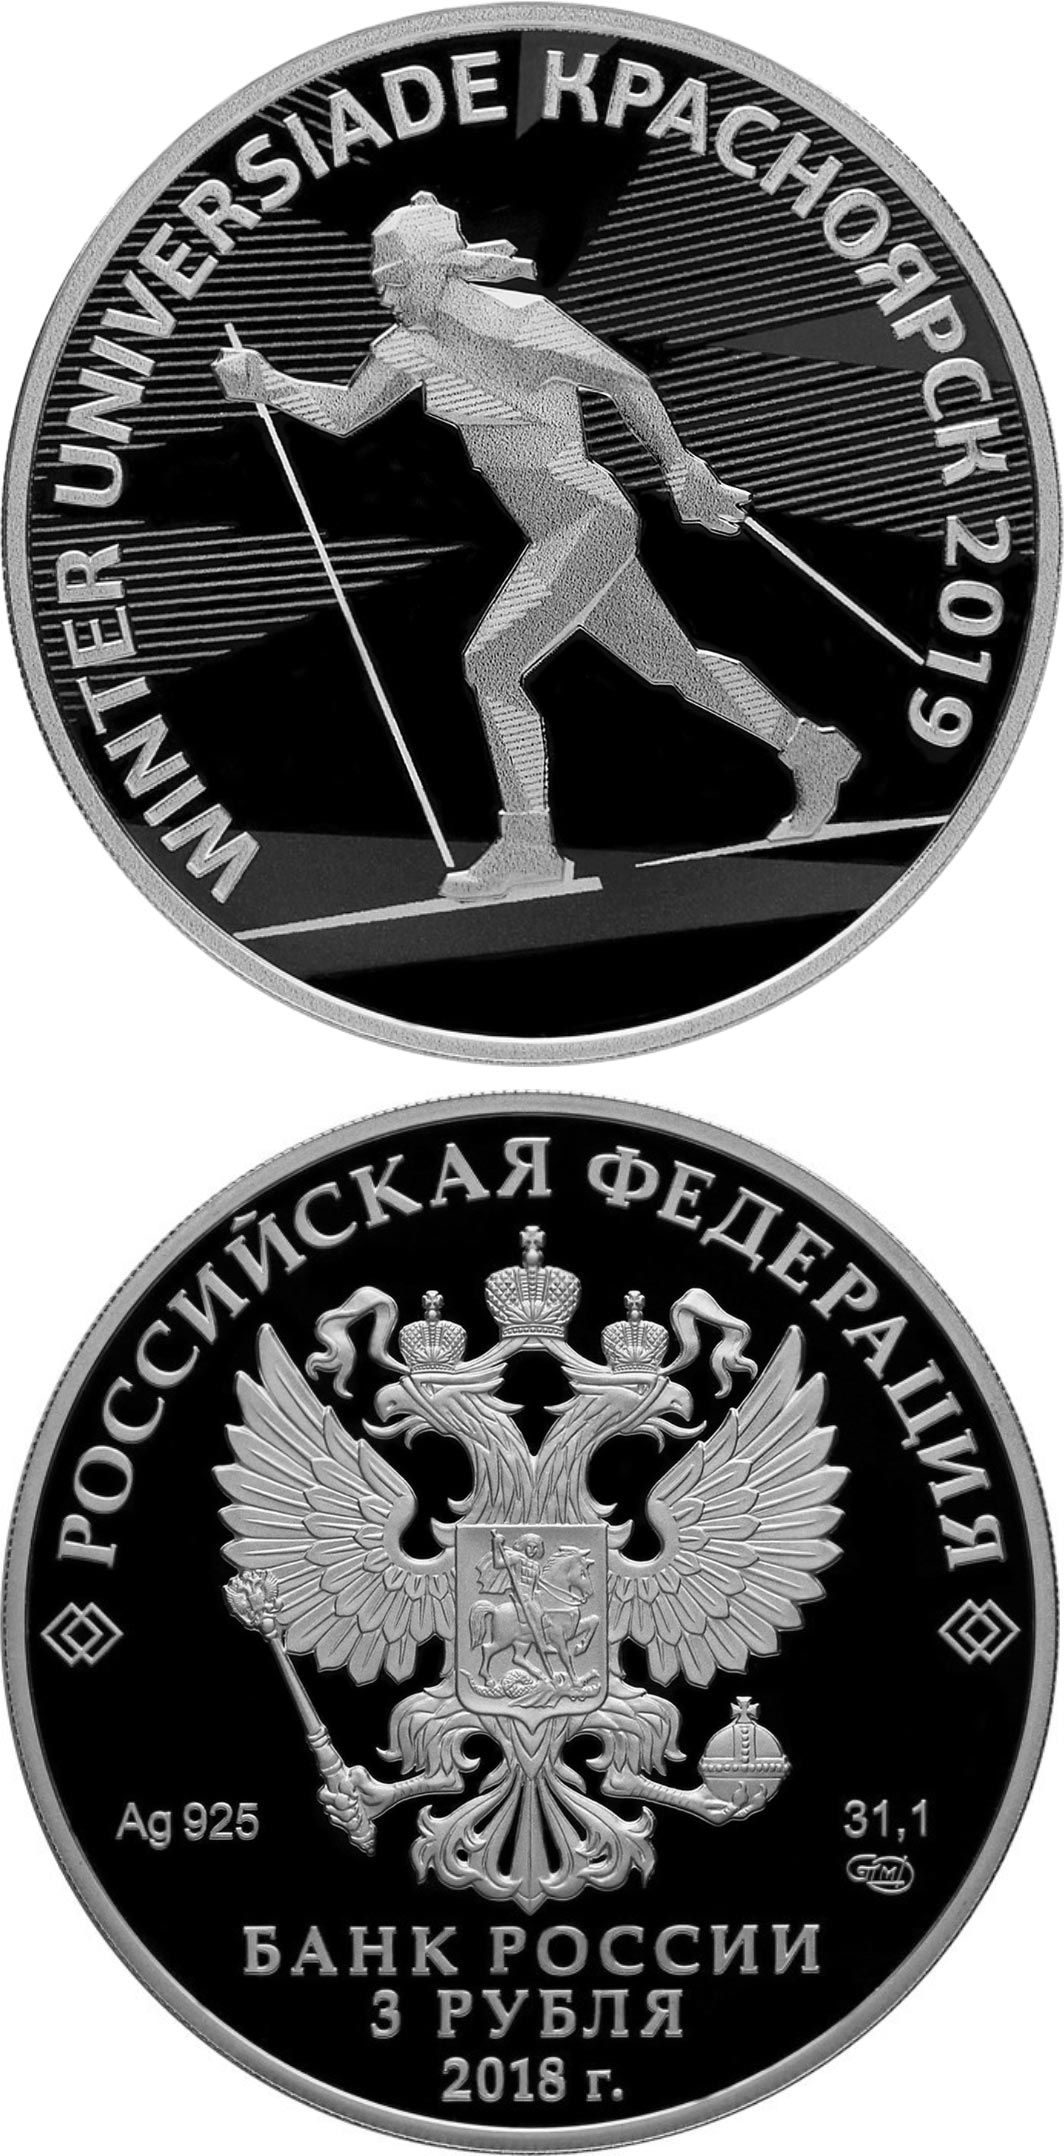 Image of 3 rubles coin – The 29th Winter Universiade of 2019 in the city of Krasnoyarsk  | Russia 2018.  The Silver coin is of Proof quality.